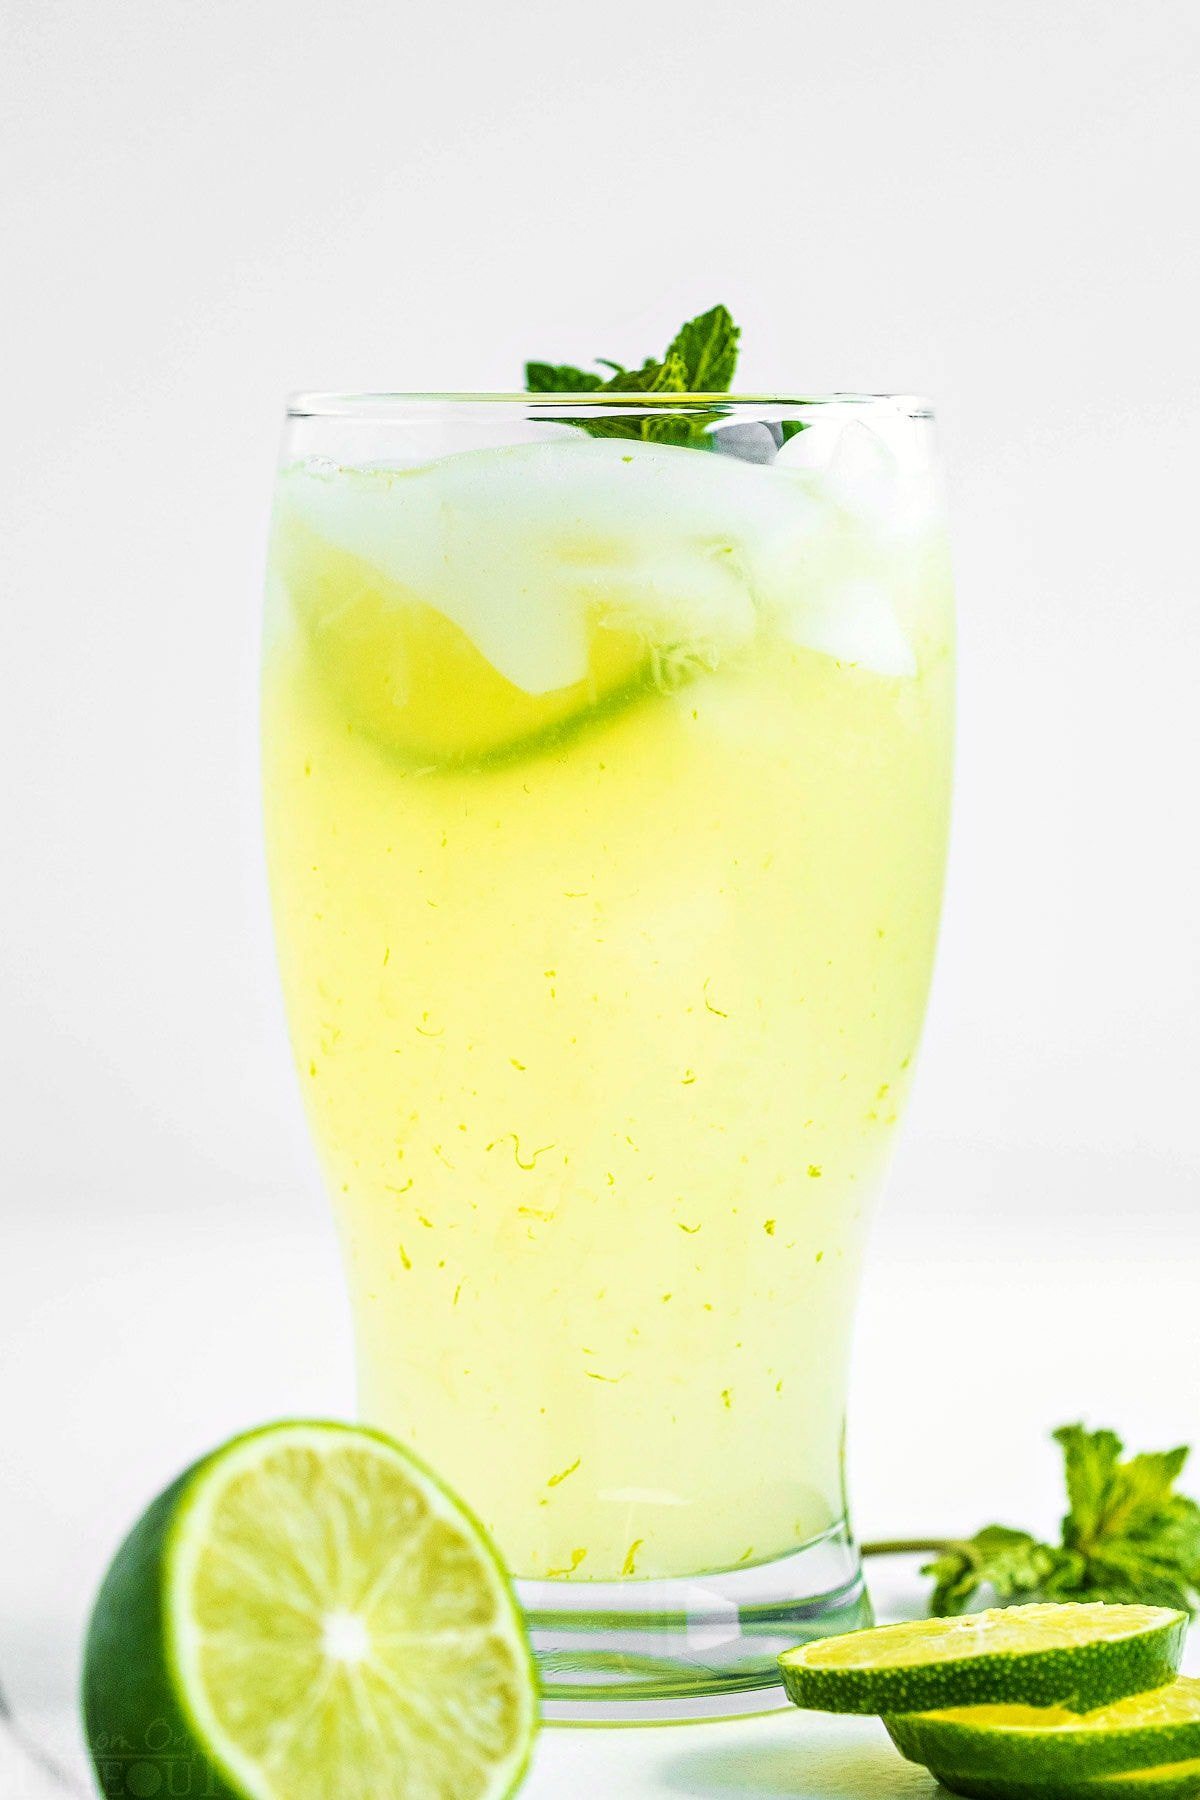 tall glass of freshly made limeade garnished with a sprig of mint and fresh lime slices sitting in front of pitcher of limeade.